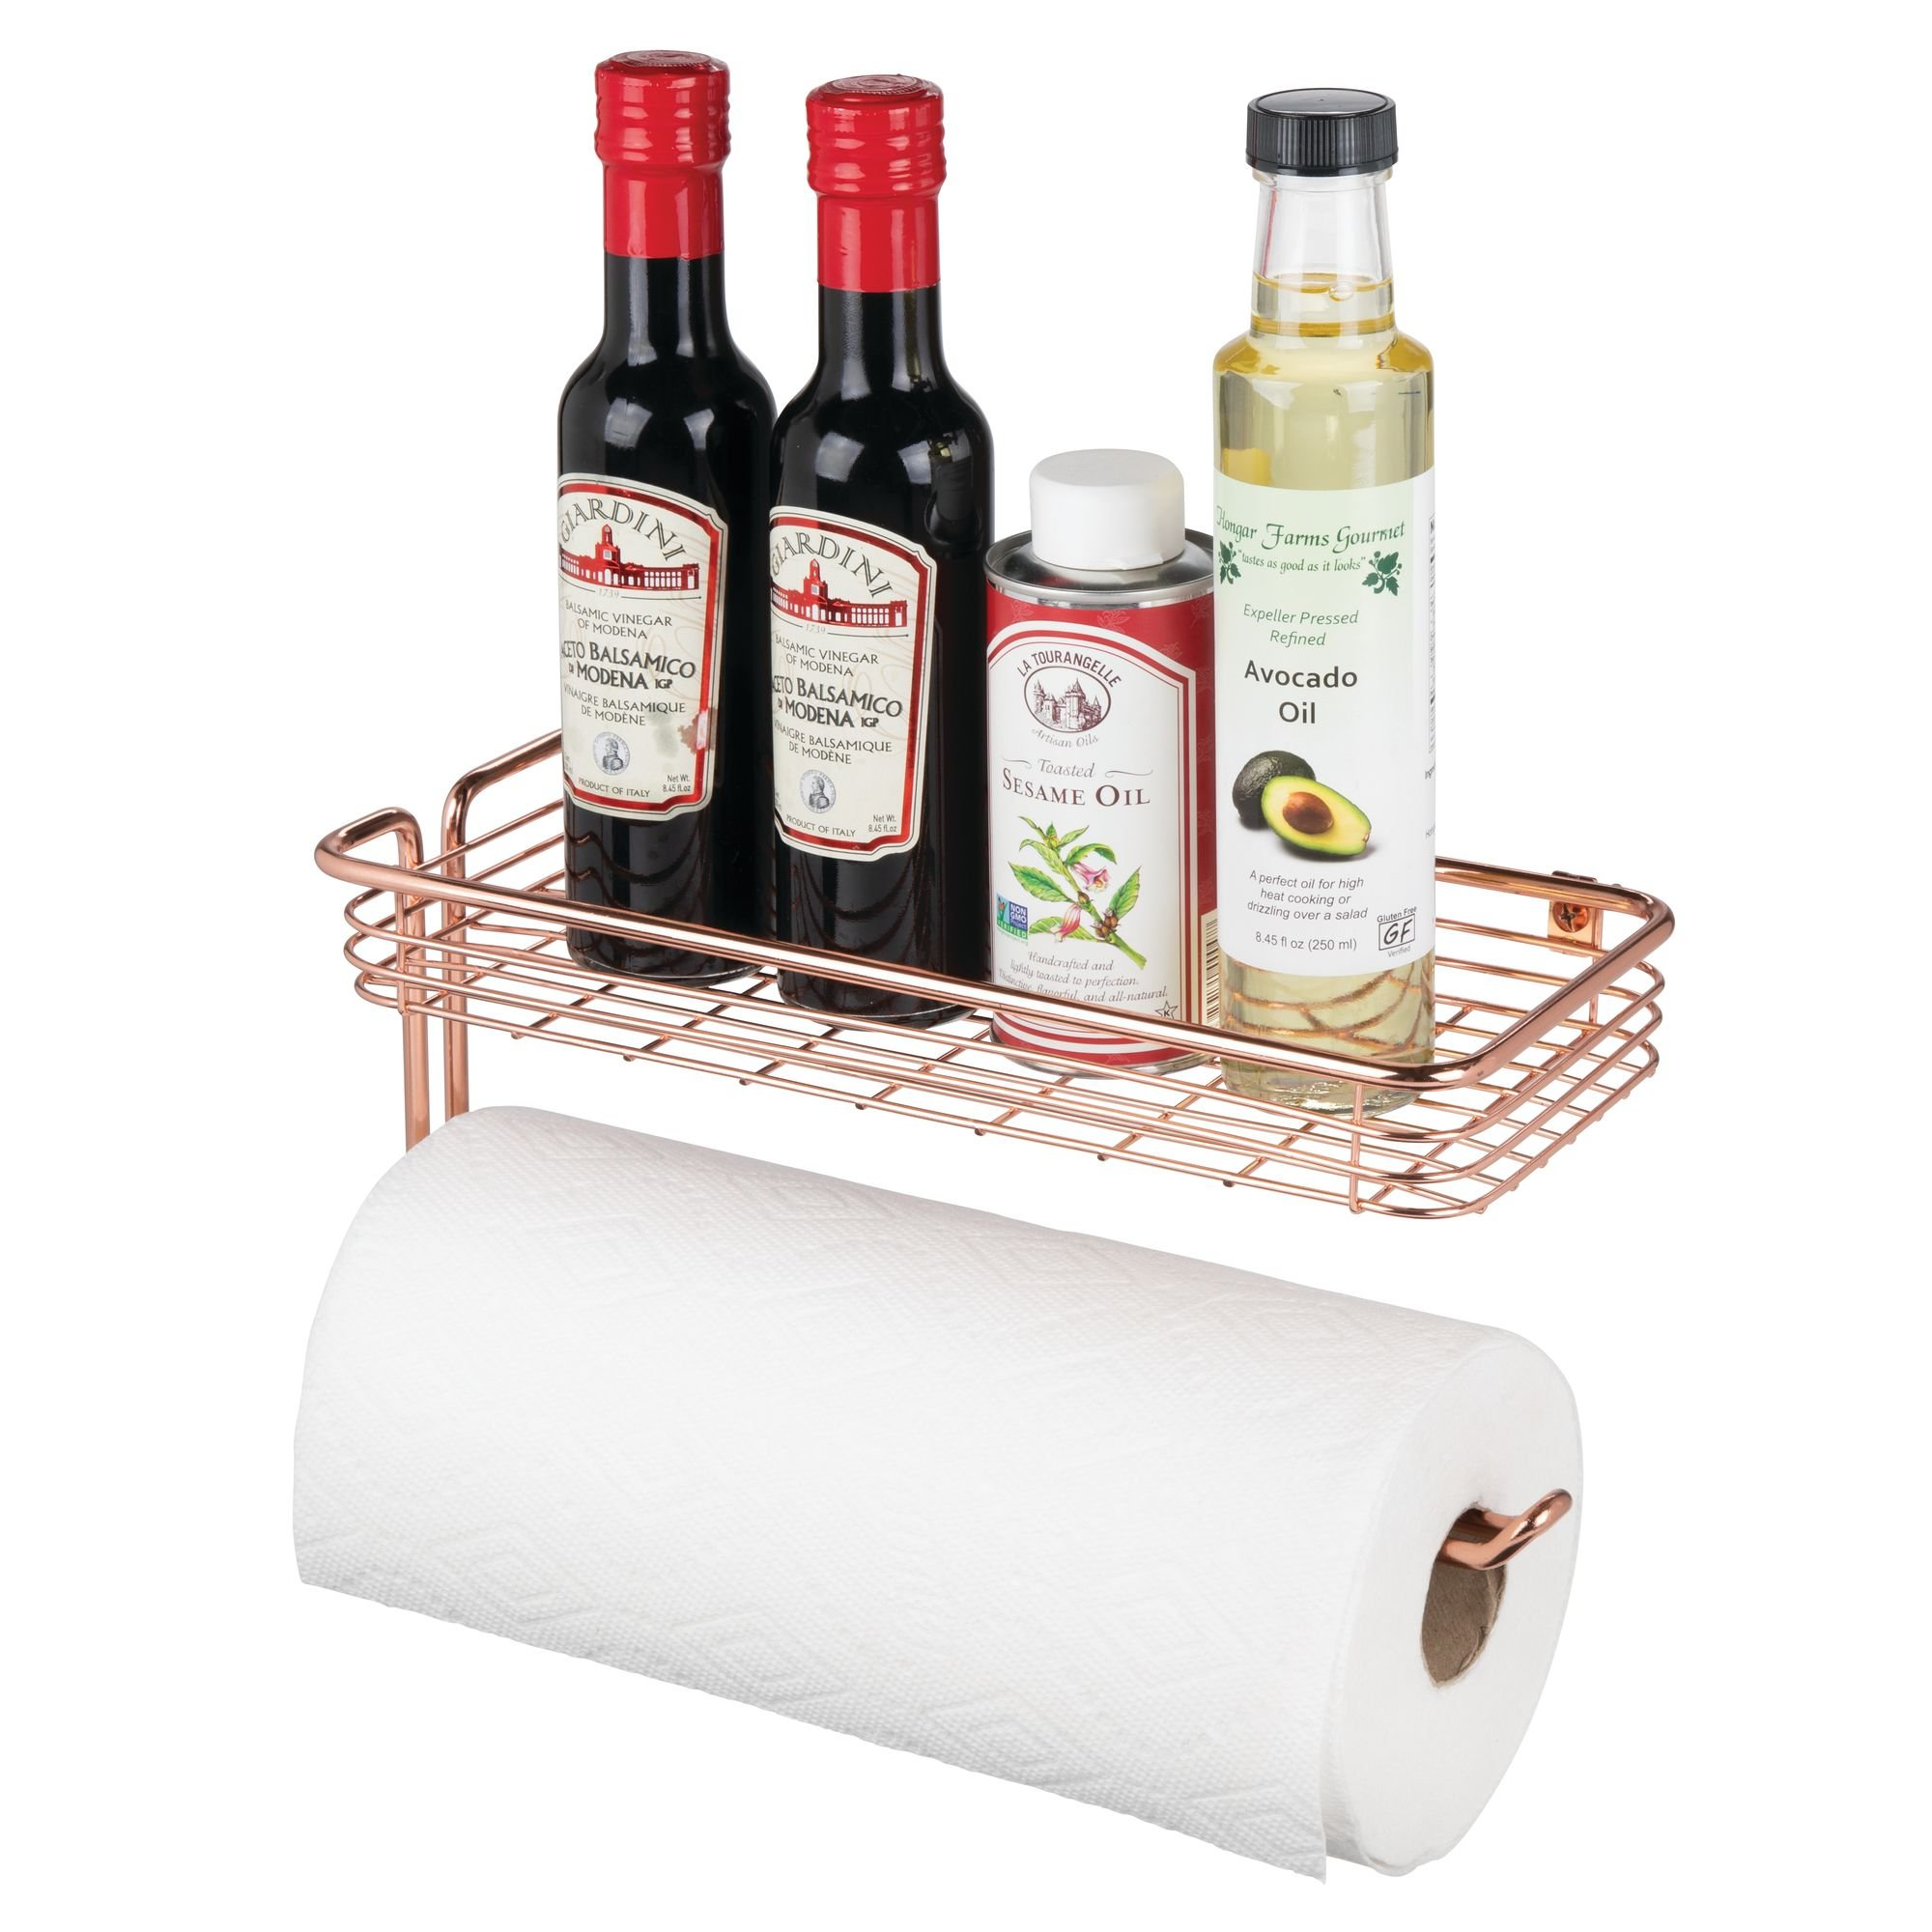 mDesign Paper Towel Holder with Spice Rack and Multi-Purpose Shelf - Wall Mount Storage Organizer for Kitchen, Pantry, Laundry, Garage - Durable Steel Wire Design, Rose Gold